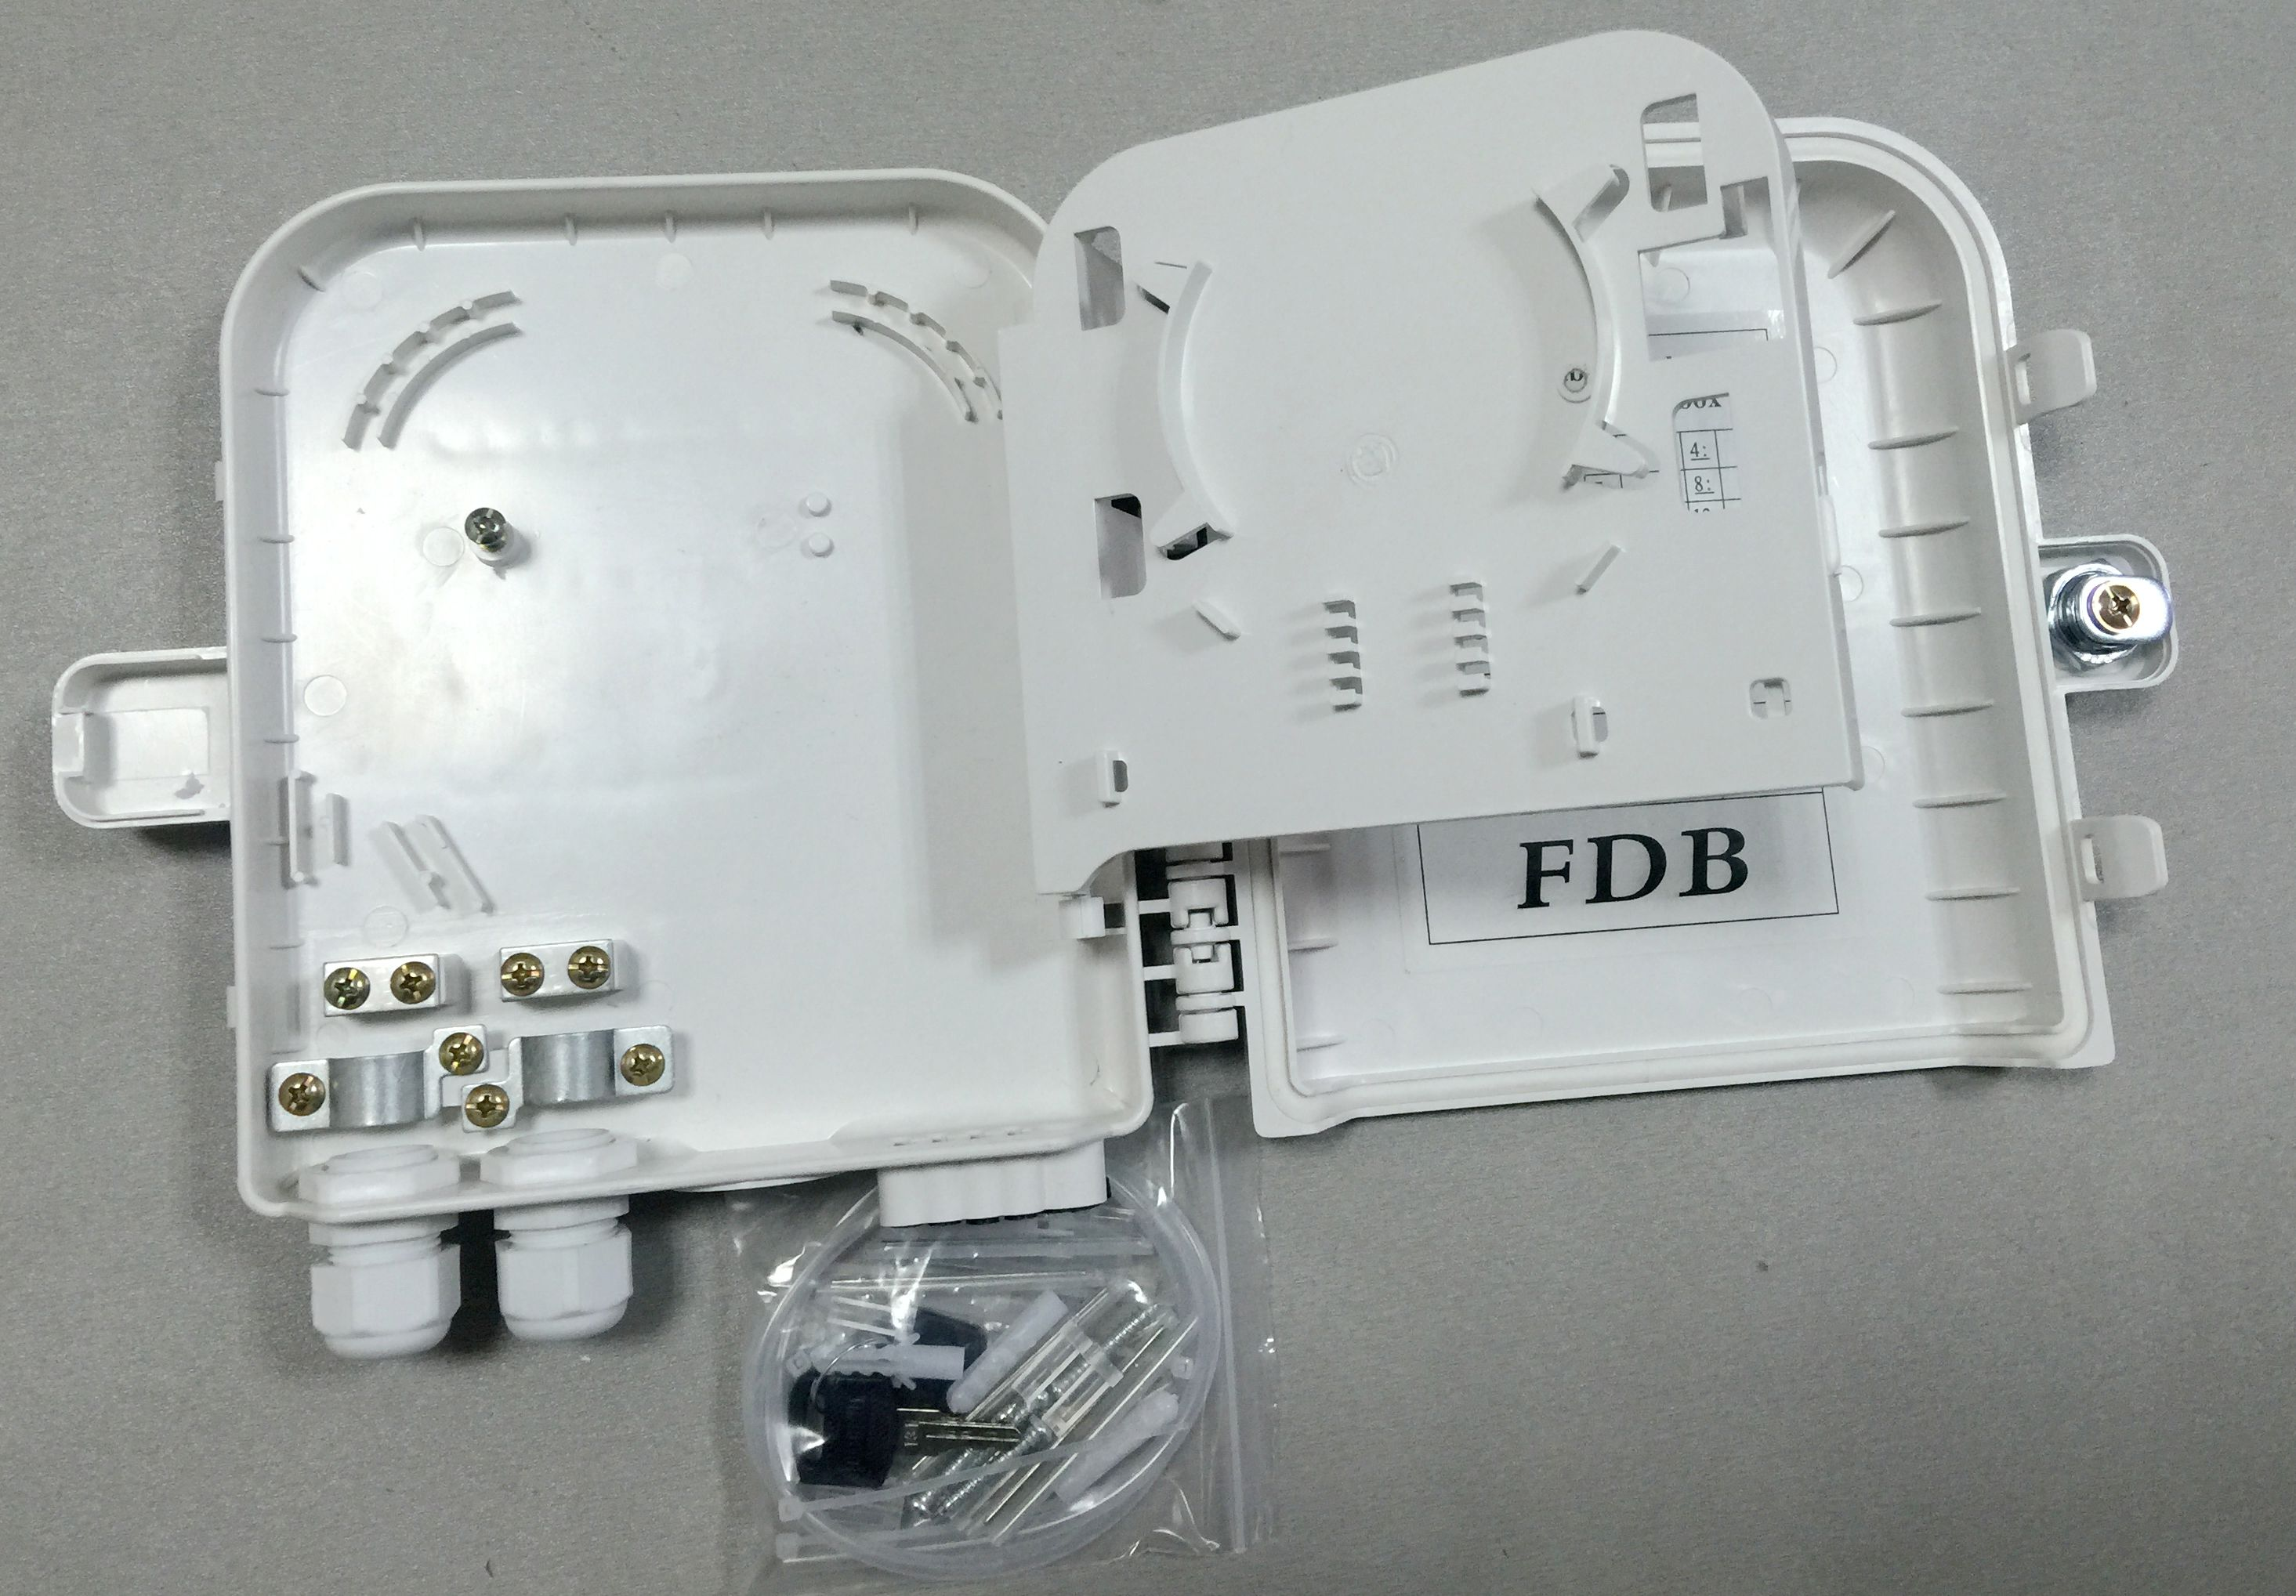 8 Ports Outdoor Plc Splitter Box